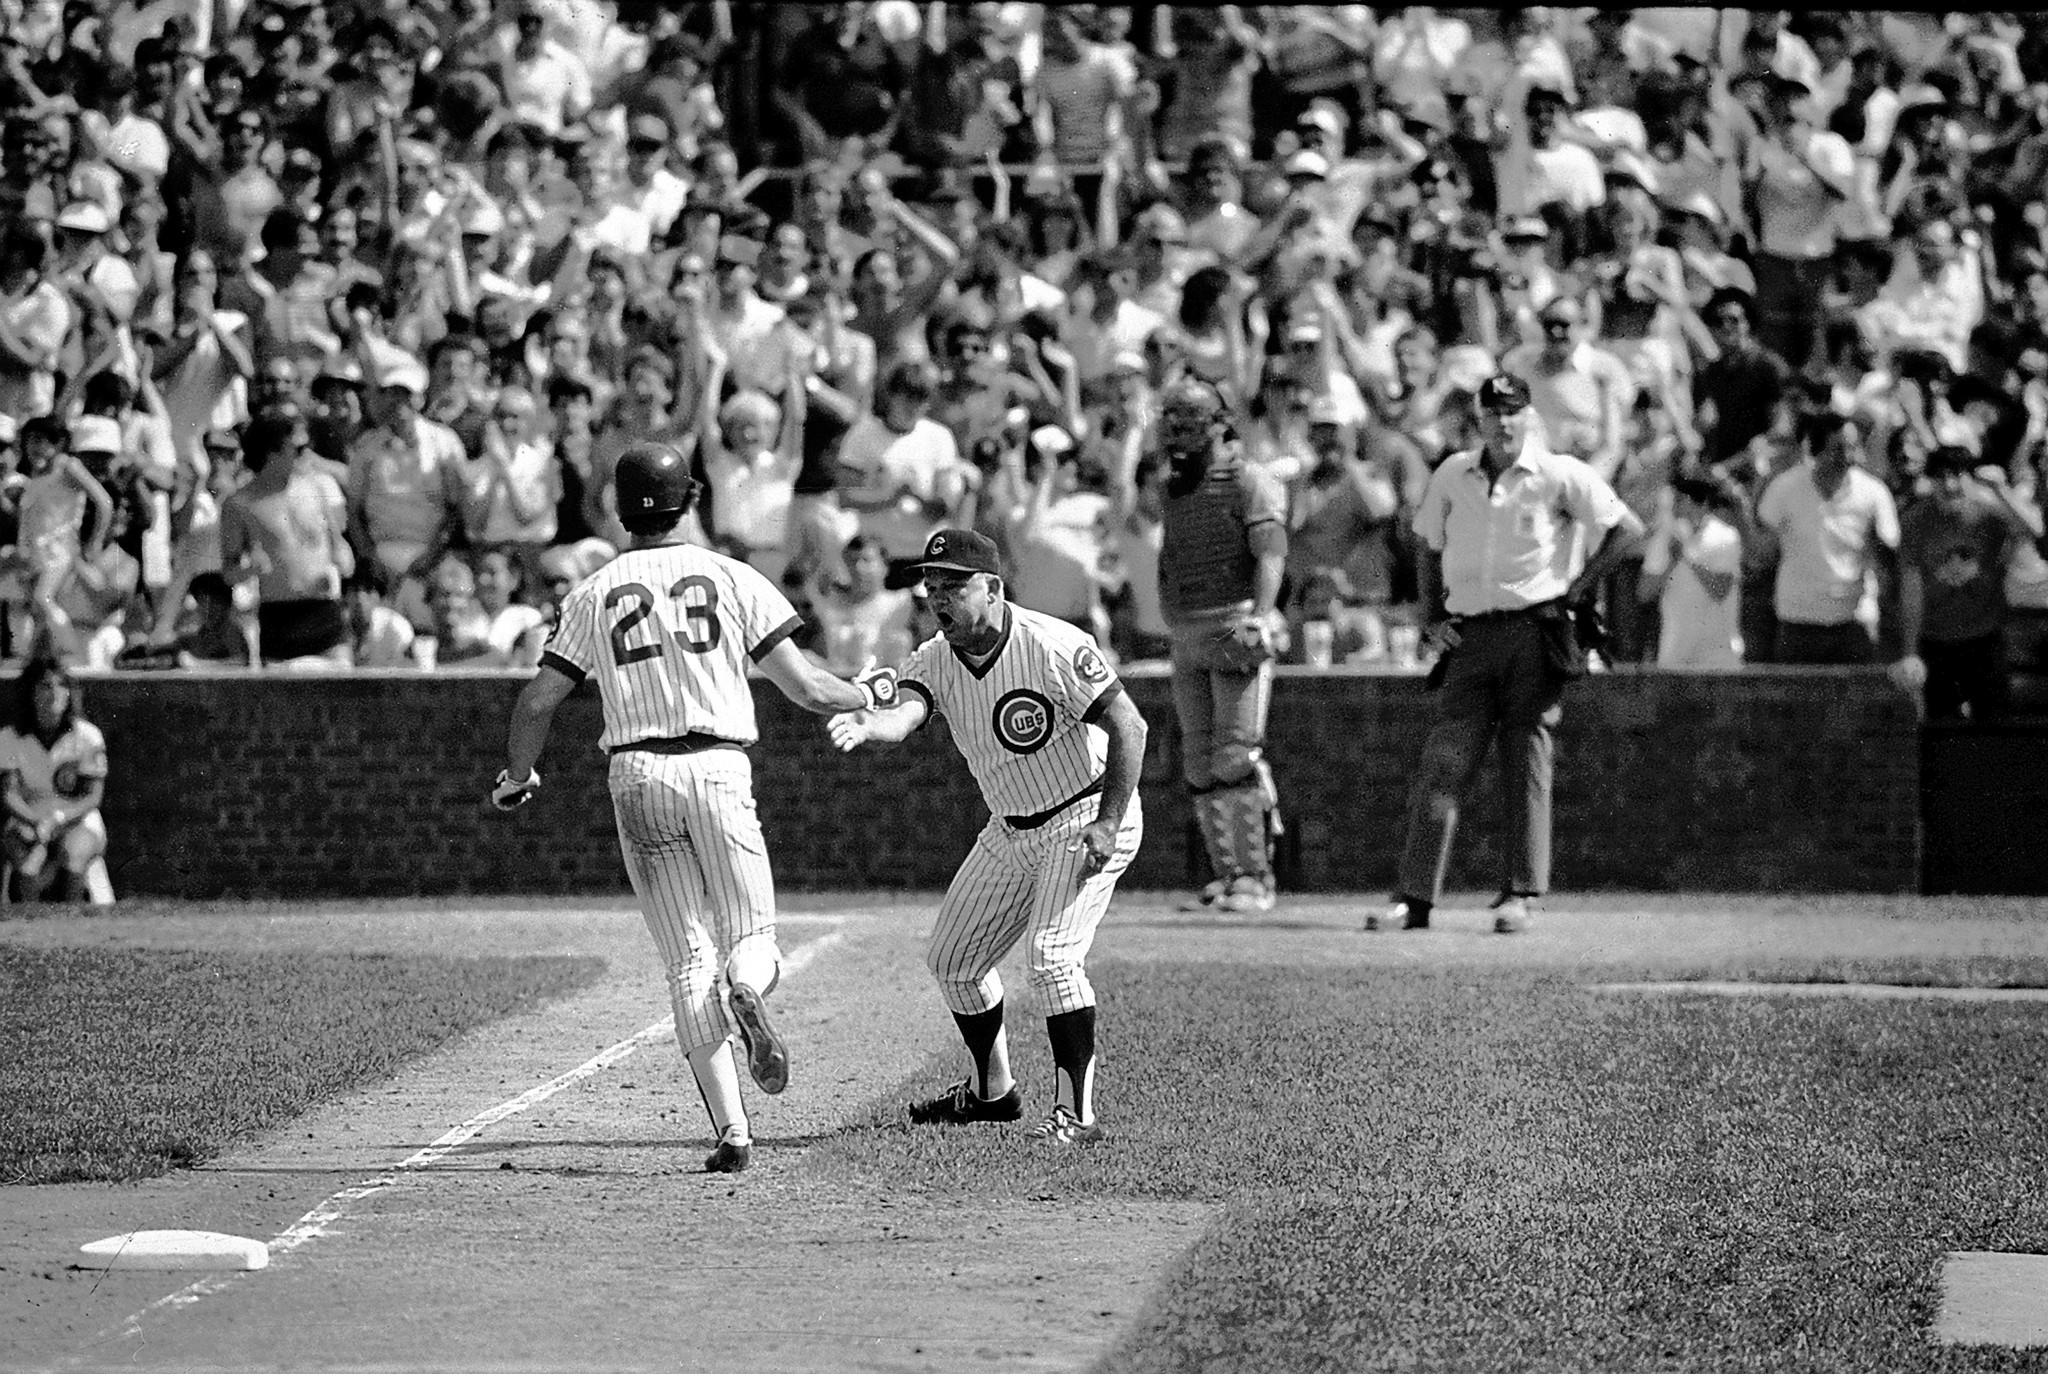 The Cubs' Ryne Sandberg is congratulated by third base coach Don Zimmer after evening the score in the ninth inning with a home run against the Cardinals. Sandburg's big game won RedEye's Best Wrigley Field moments bracket.